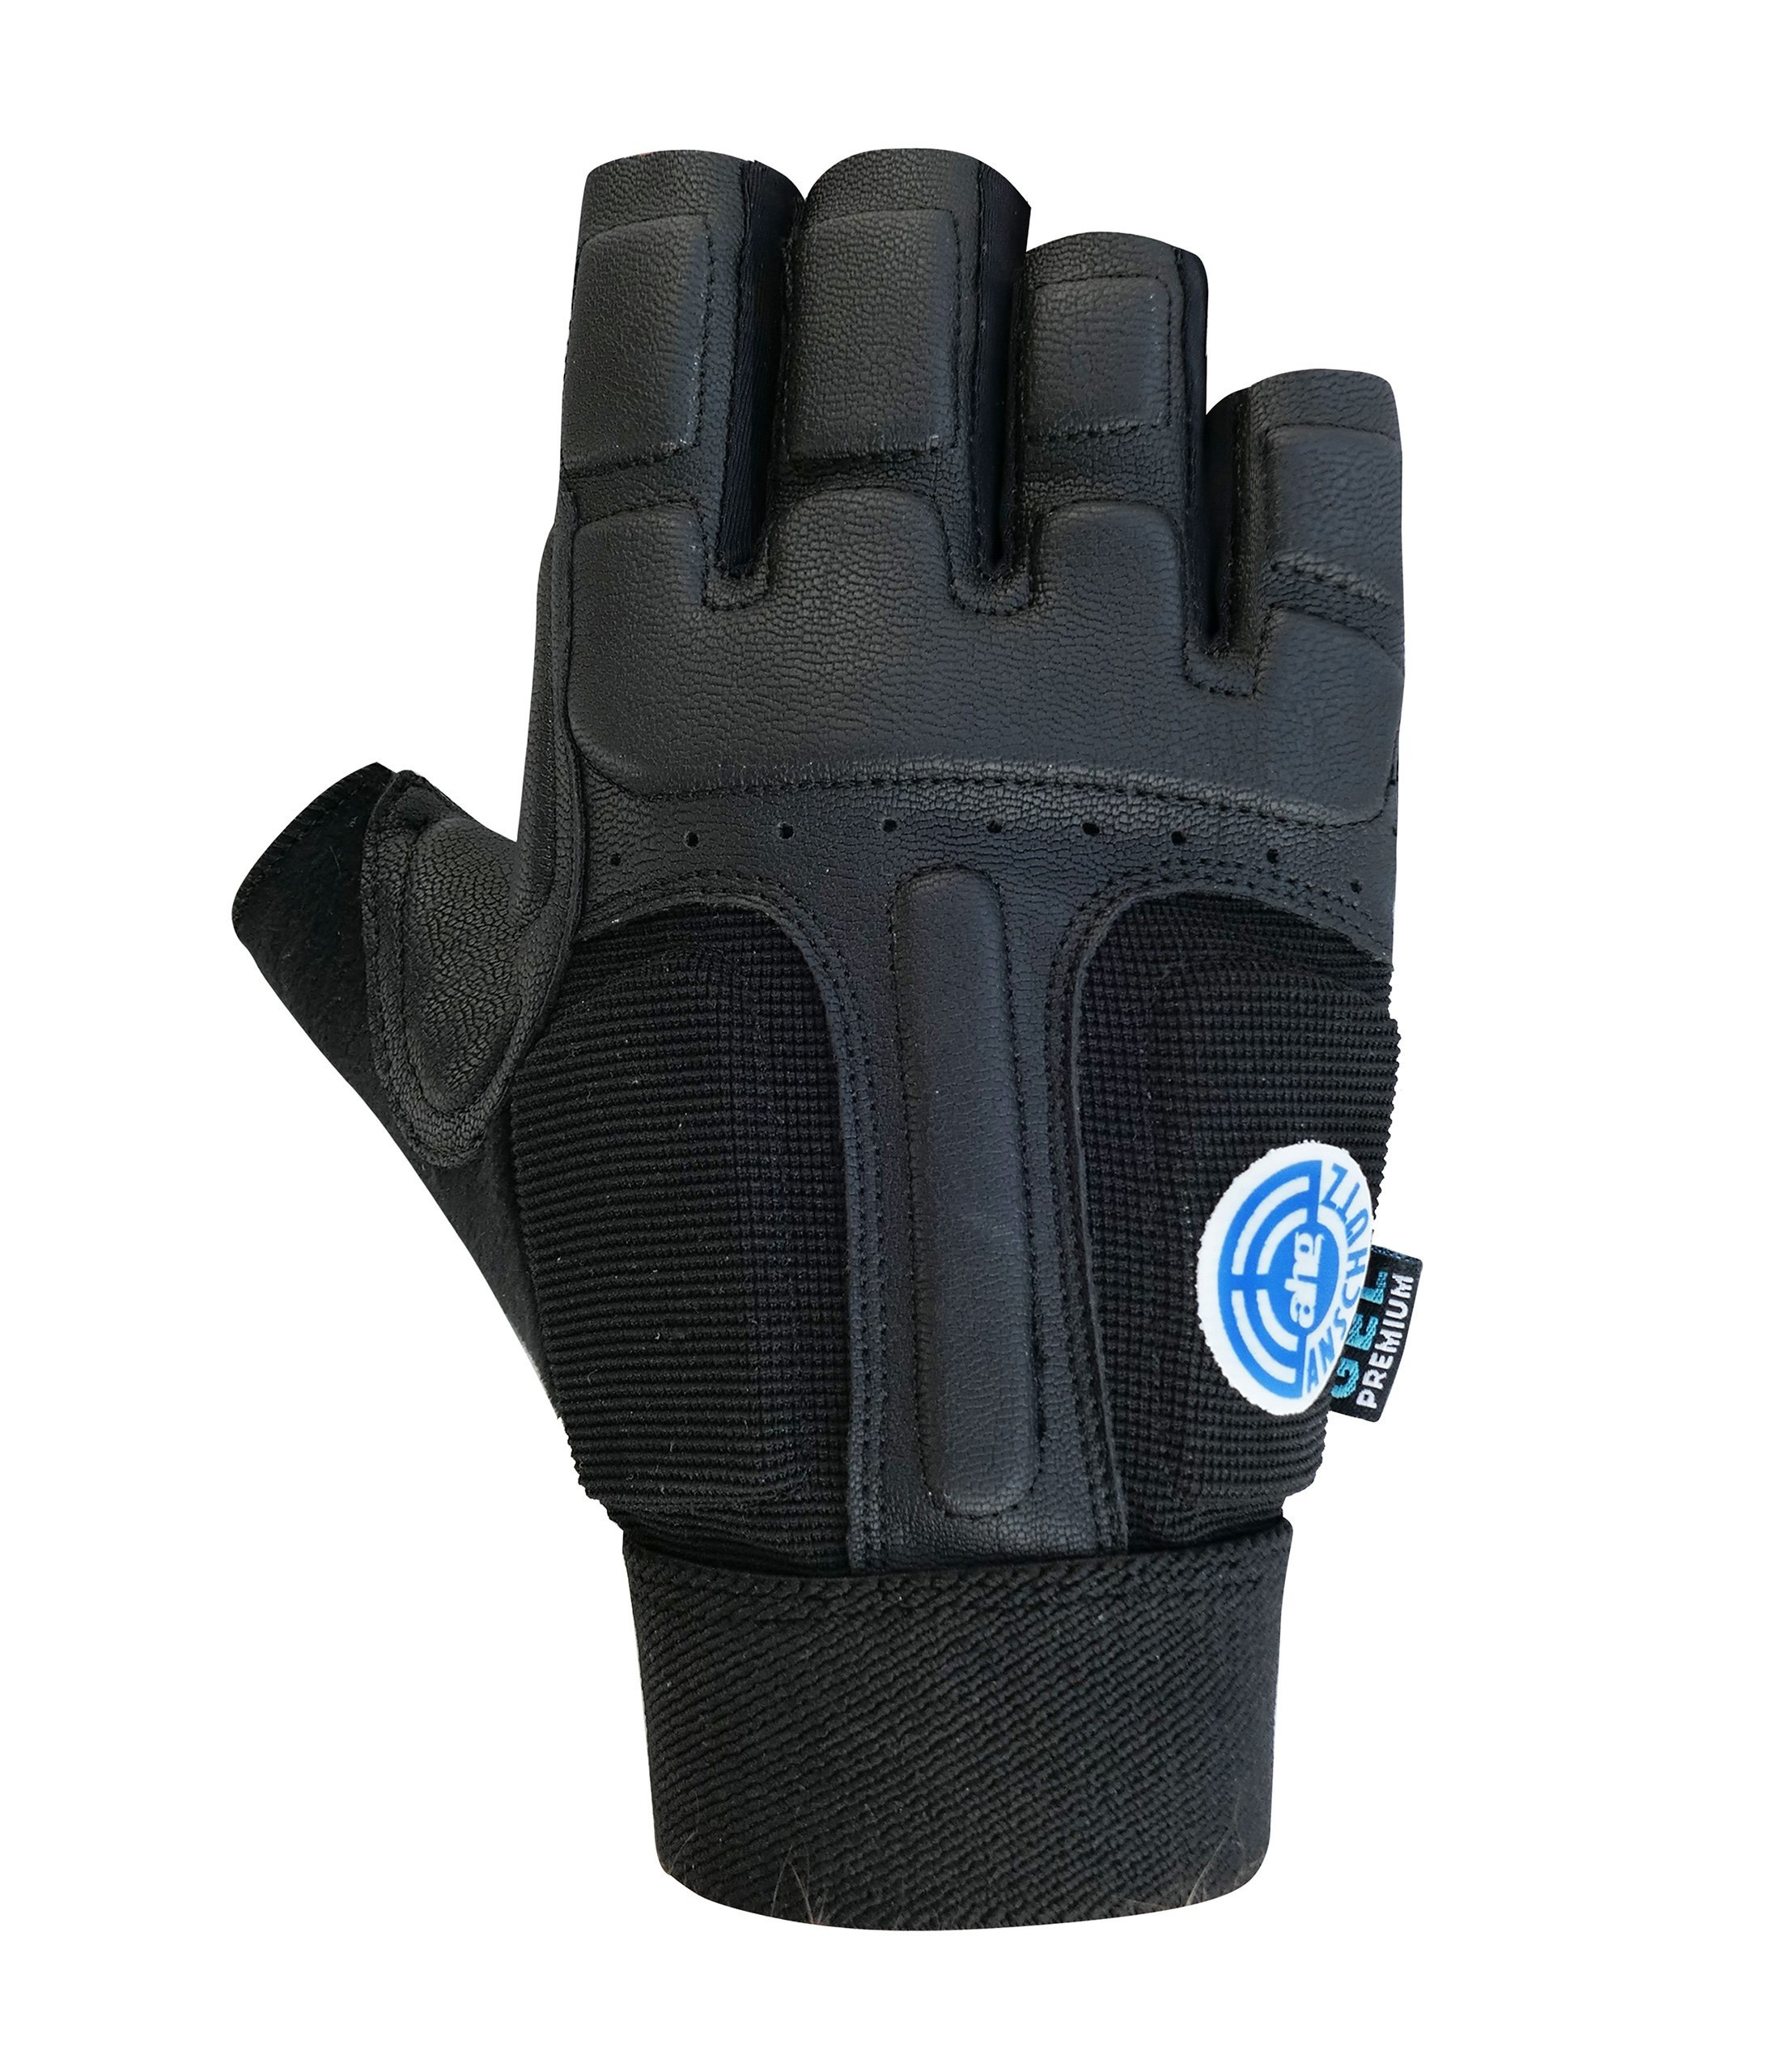 Supporting Glove Contact Gel